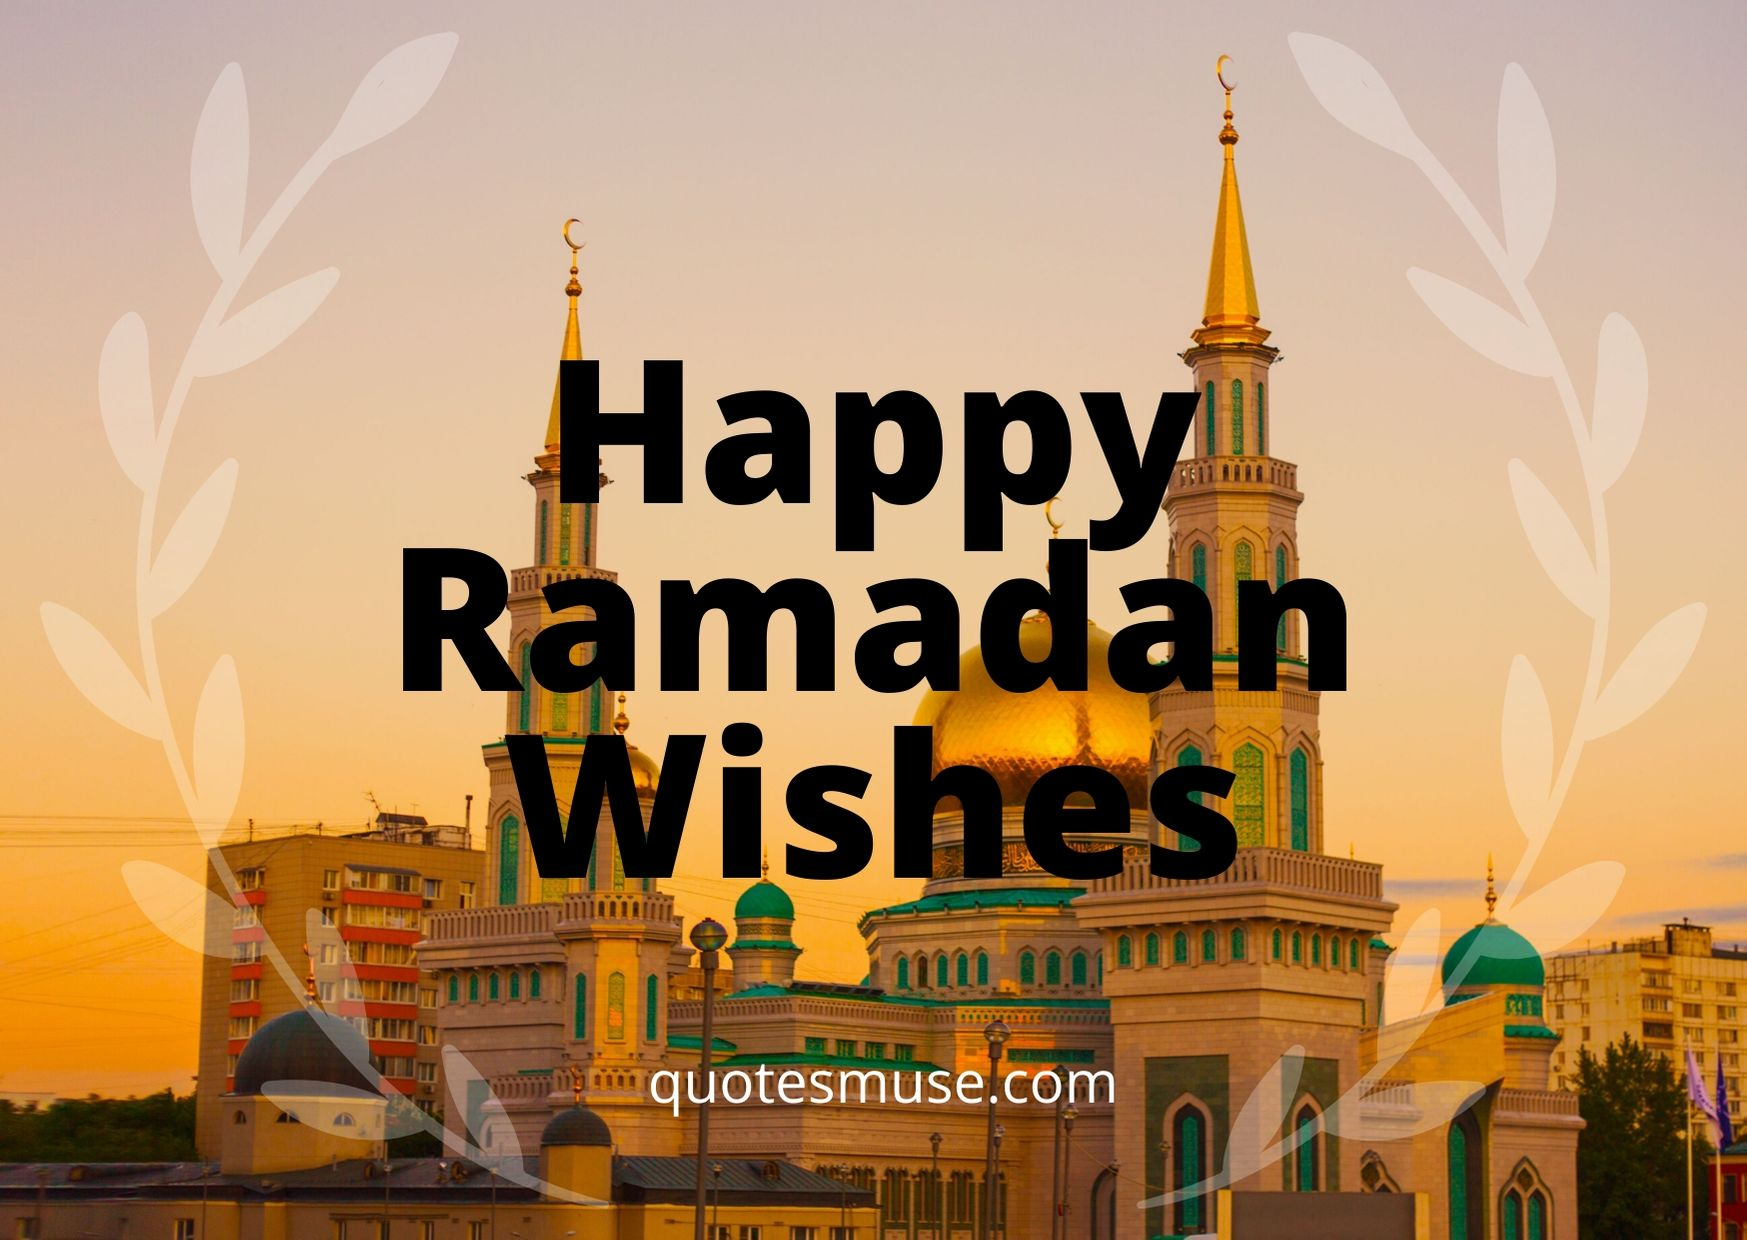 Happy Ramadan Wishes, Quotes and Greetings